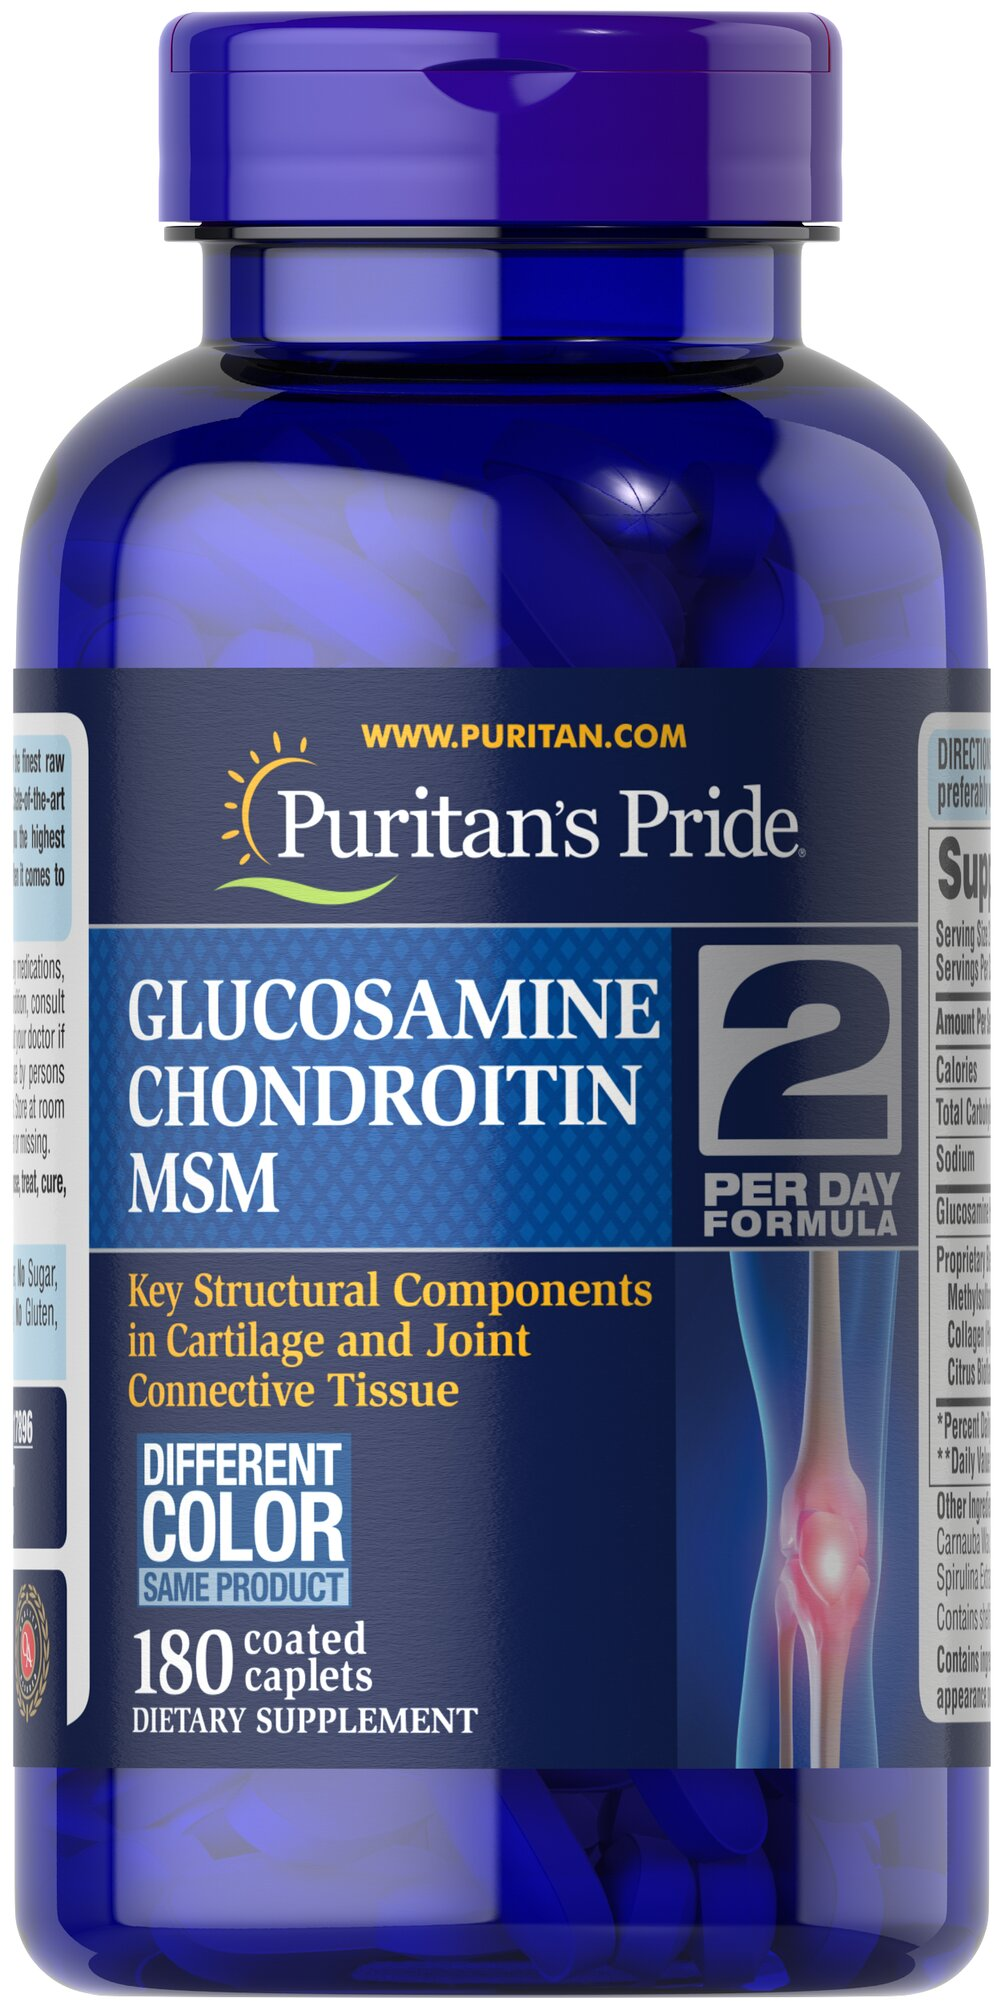 Triple Strength Glucosamine, Chondroitin & MSM Joint Soother® <p>Lubricates joints to improve flexibility**</p><p>Supports connective tissue in and around the joints**</p><p>Triple Strength Glucosamine, Chondroitin and MSM is the most powerful joint soother yet!** Just two caplets per day will give you triple strength protection with 1500 mg of Glucosamine, and 1700 mg of our joint nourishing proprietary blend.**</p> 180 Caplets  $44.78